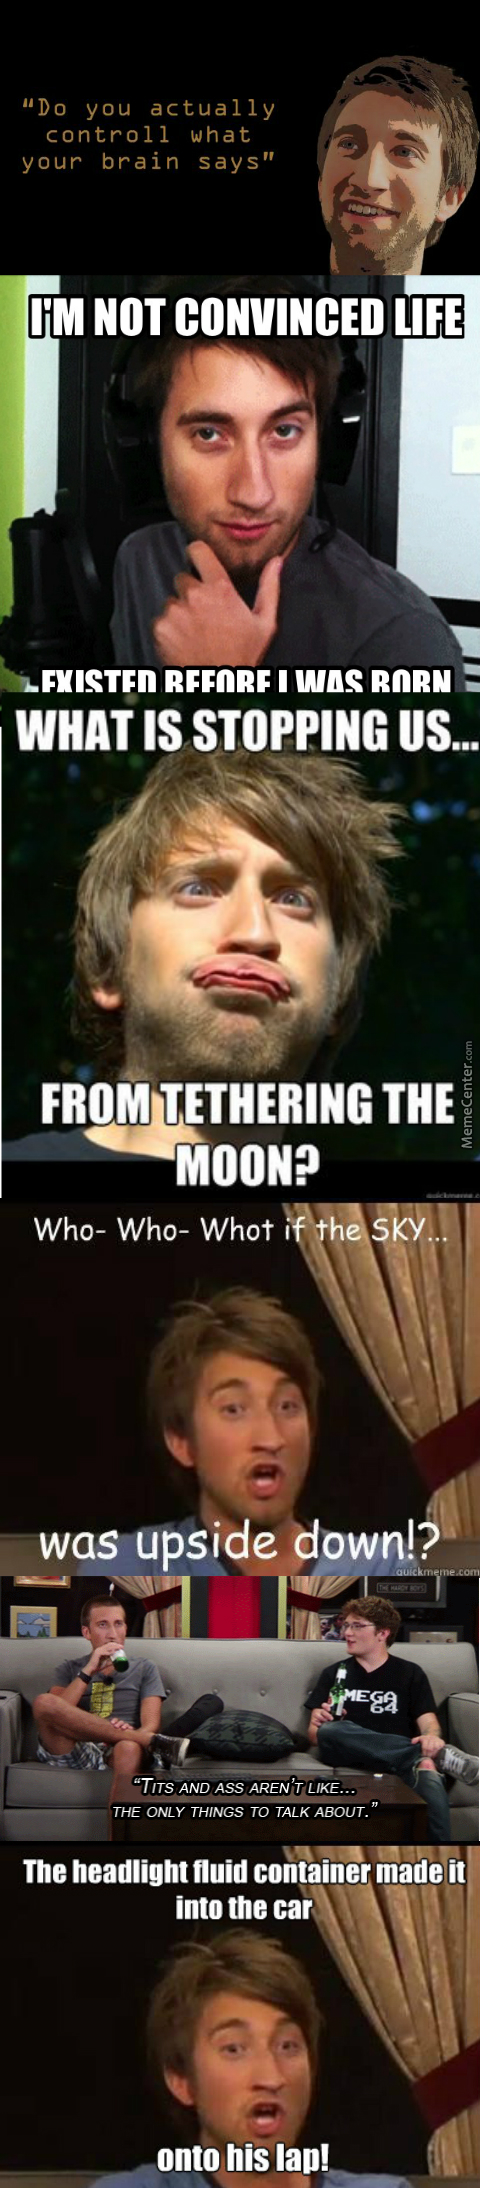 Gavin Free Dumb Quotes Compilation by n00bkilla193 - Meme ...